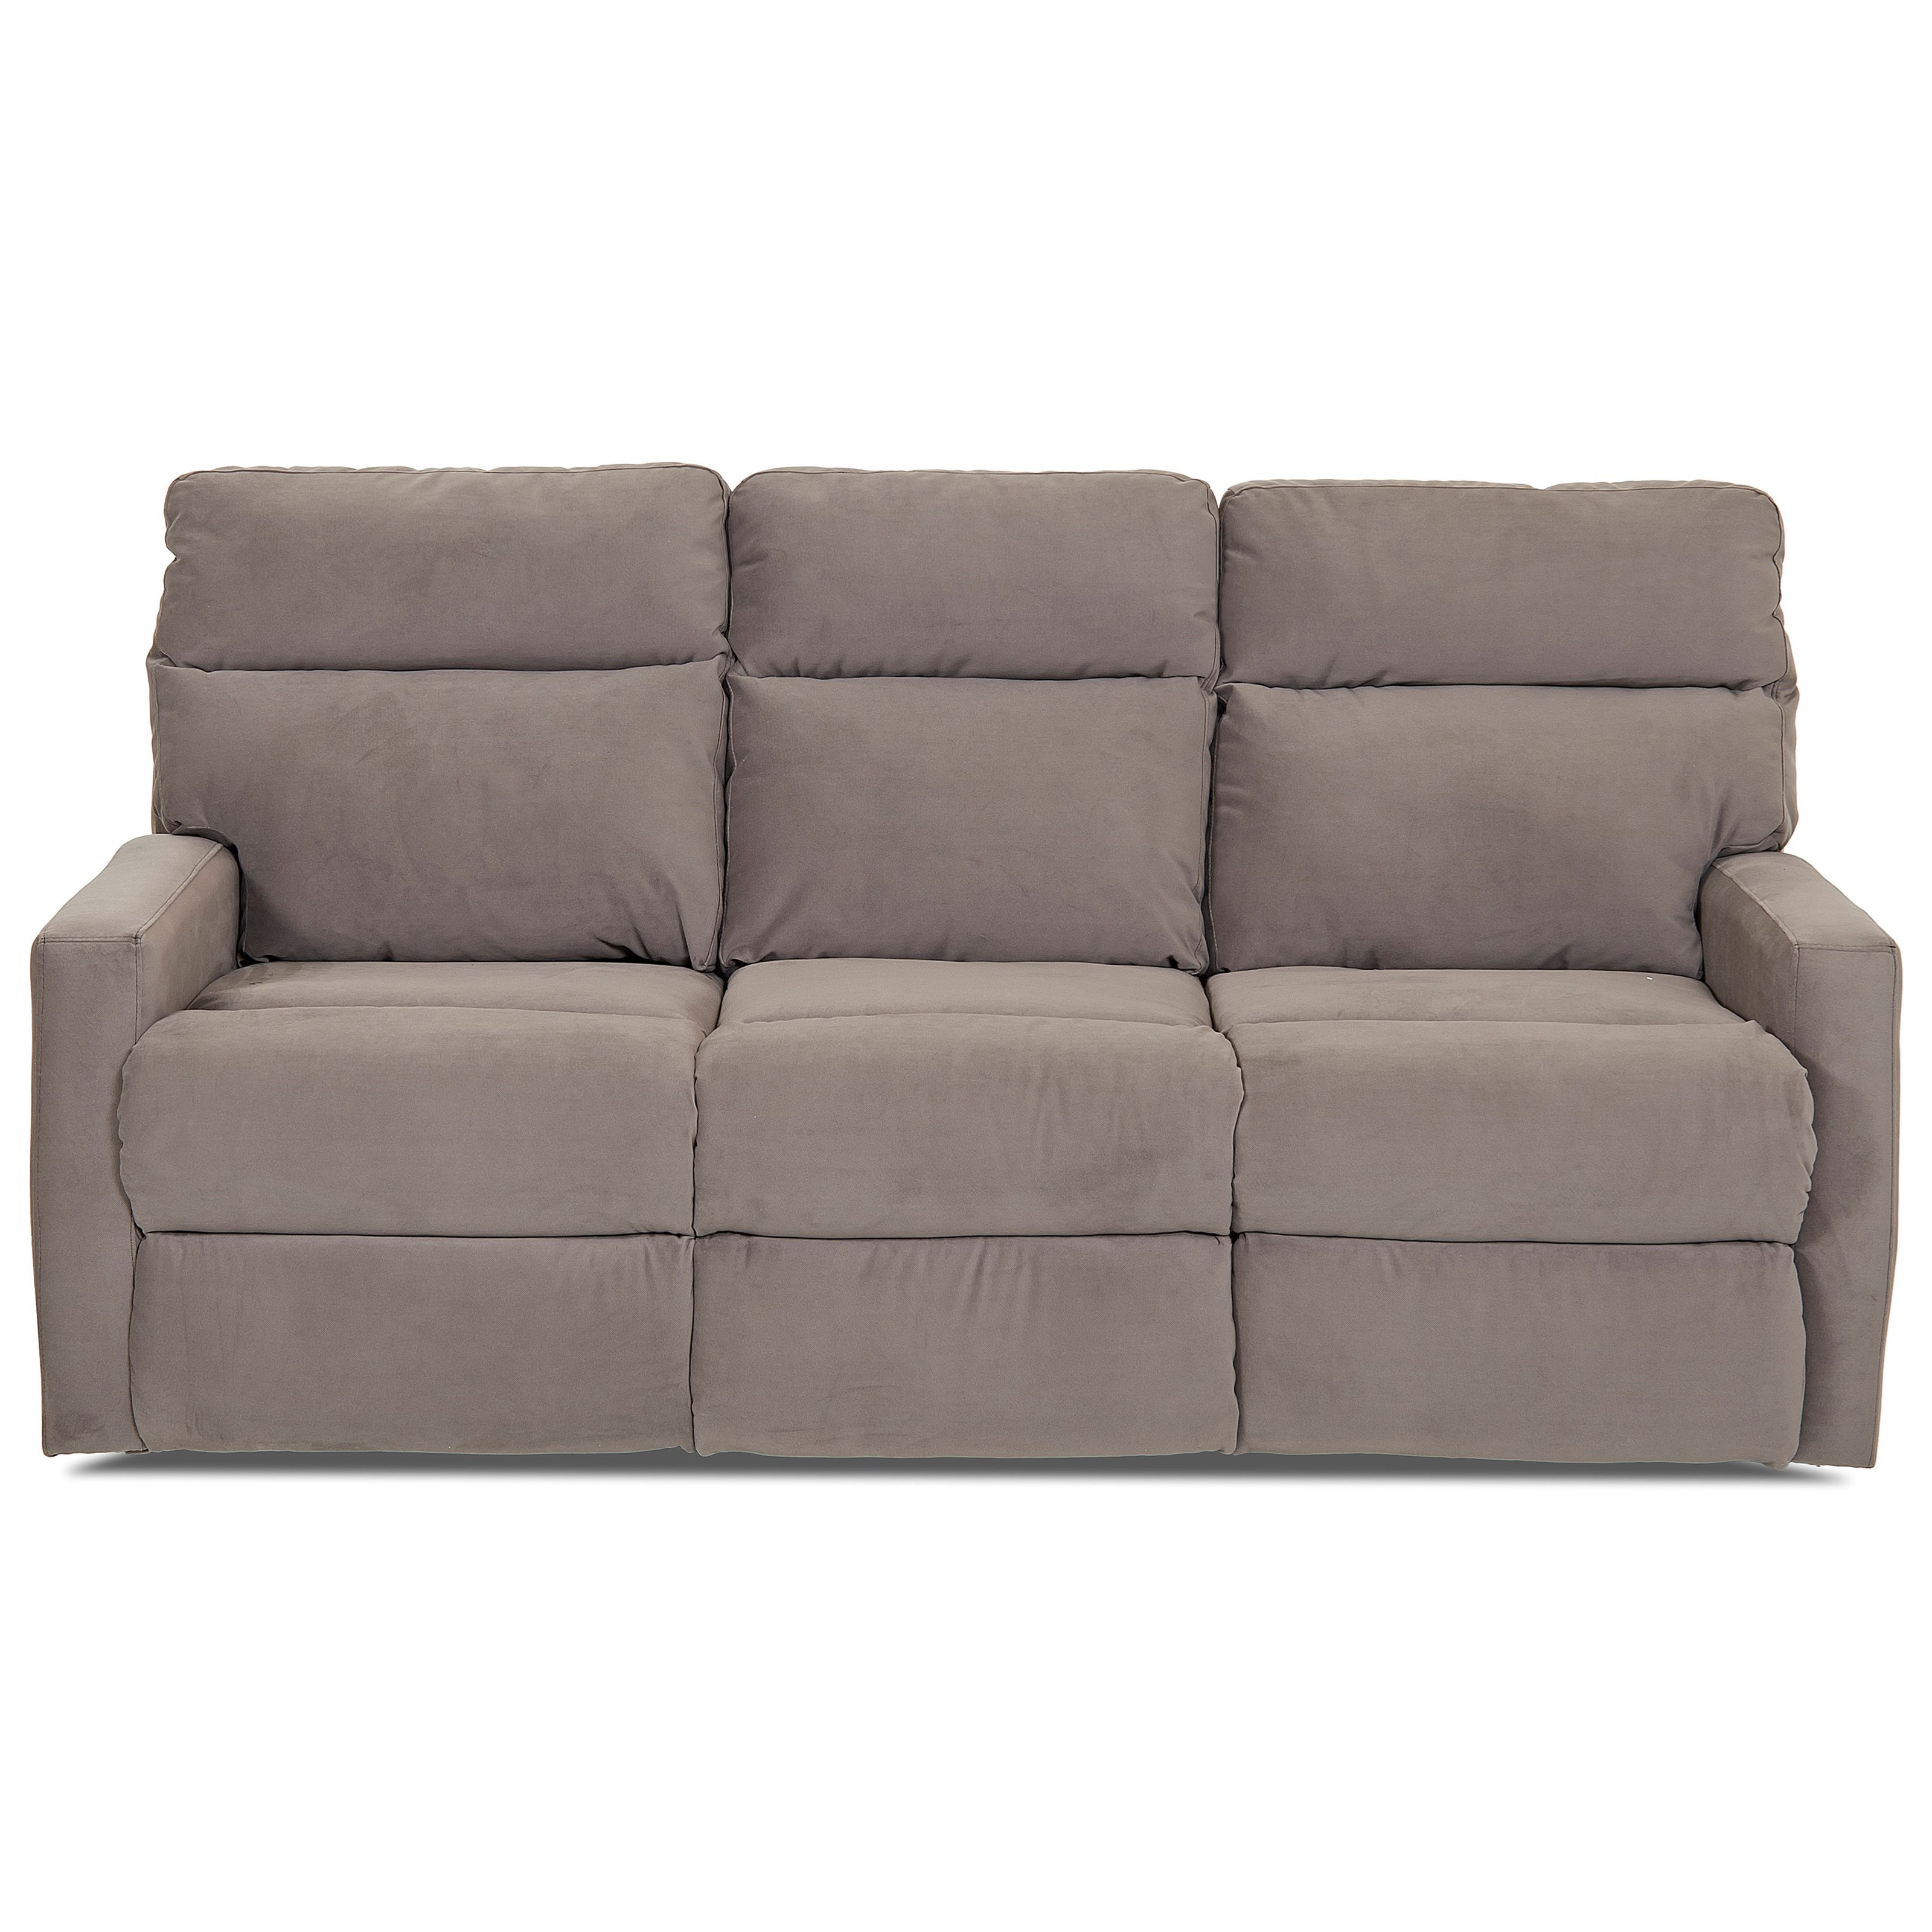 Klaussner Daphne Reclining Sofa With Soft Track Arms